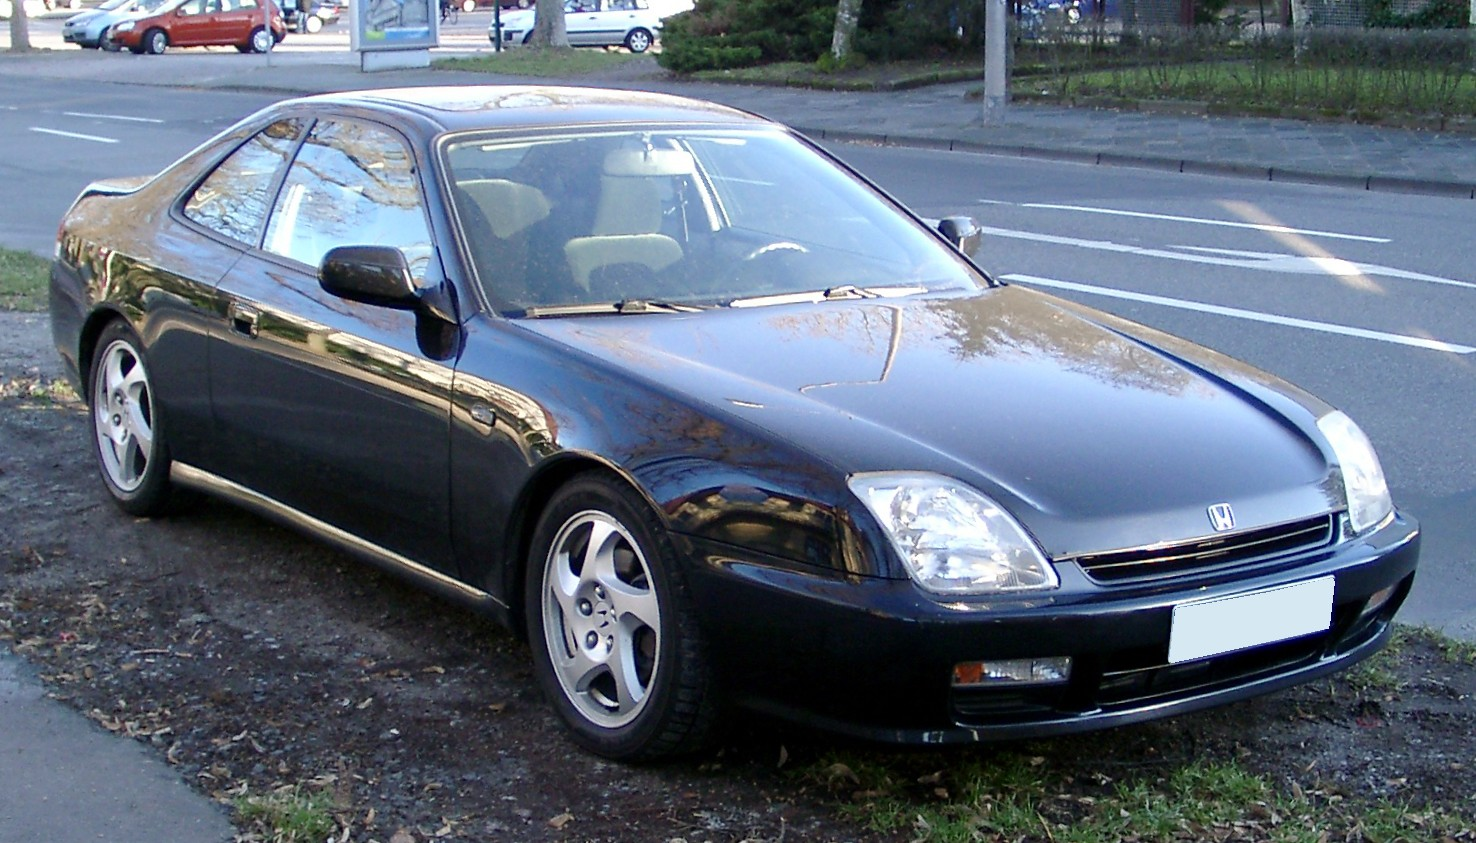 Description Honda Prelude 5 front 20080220.jpg